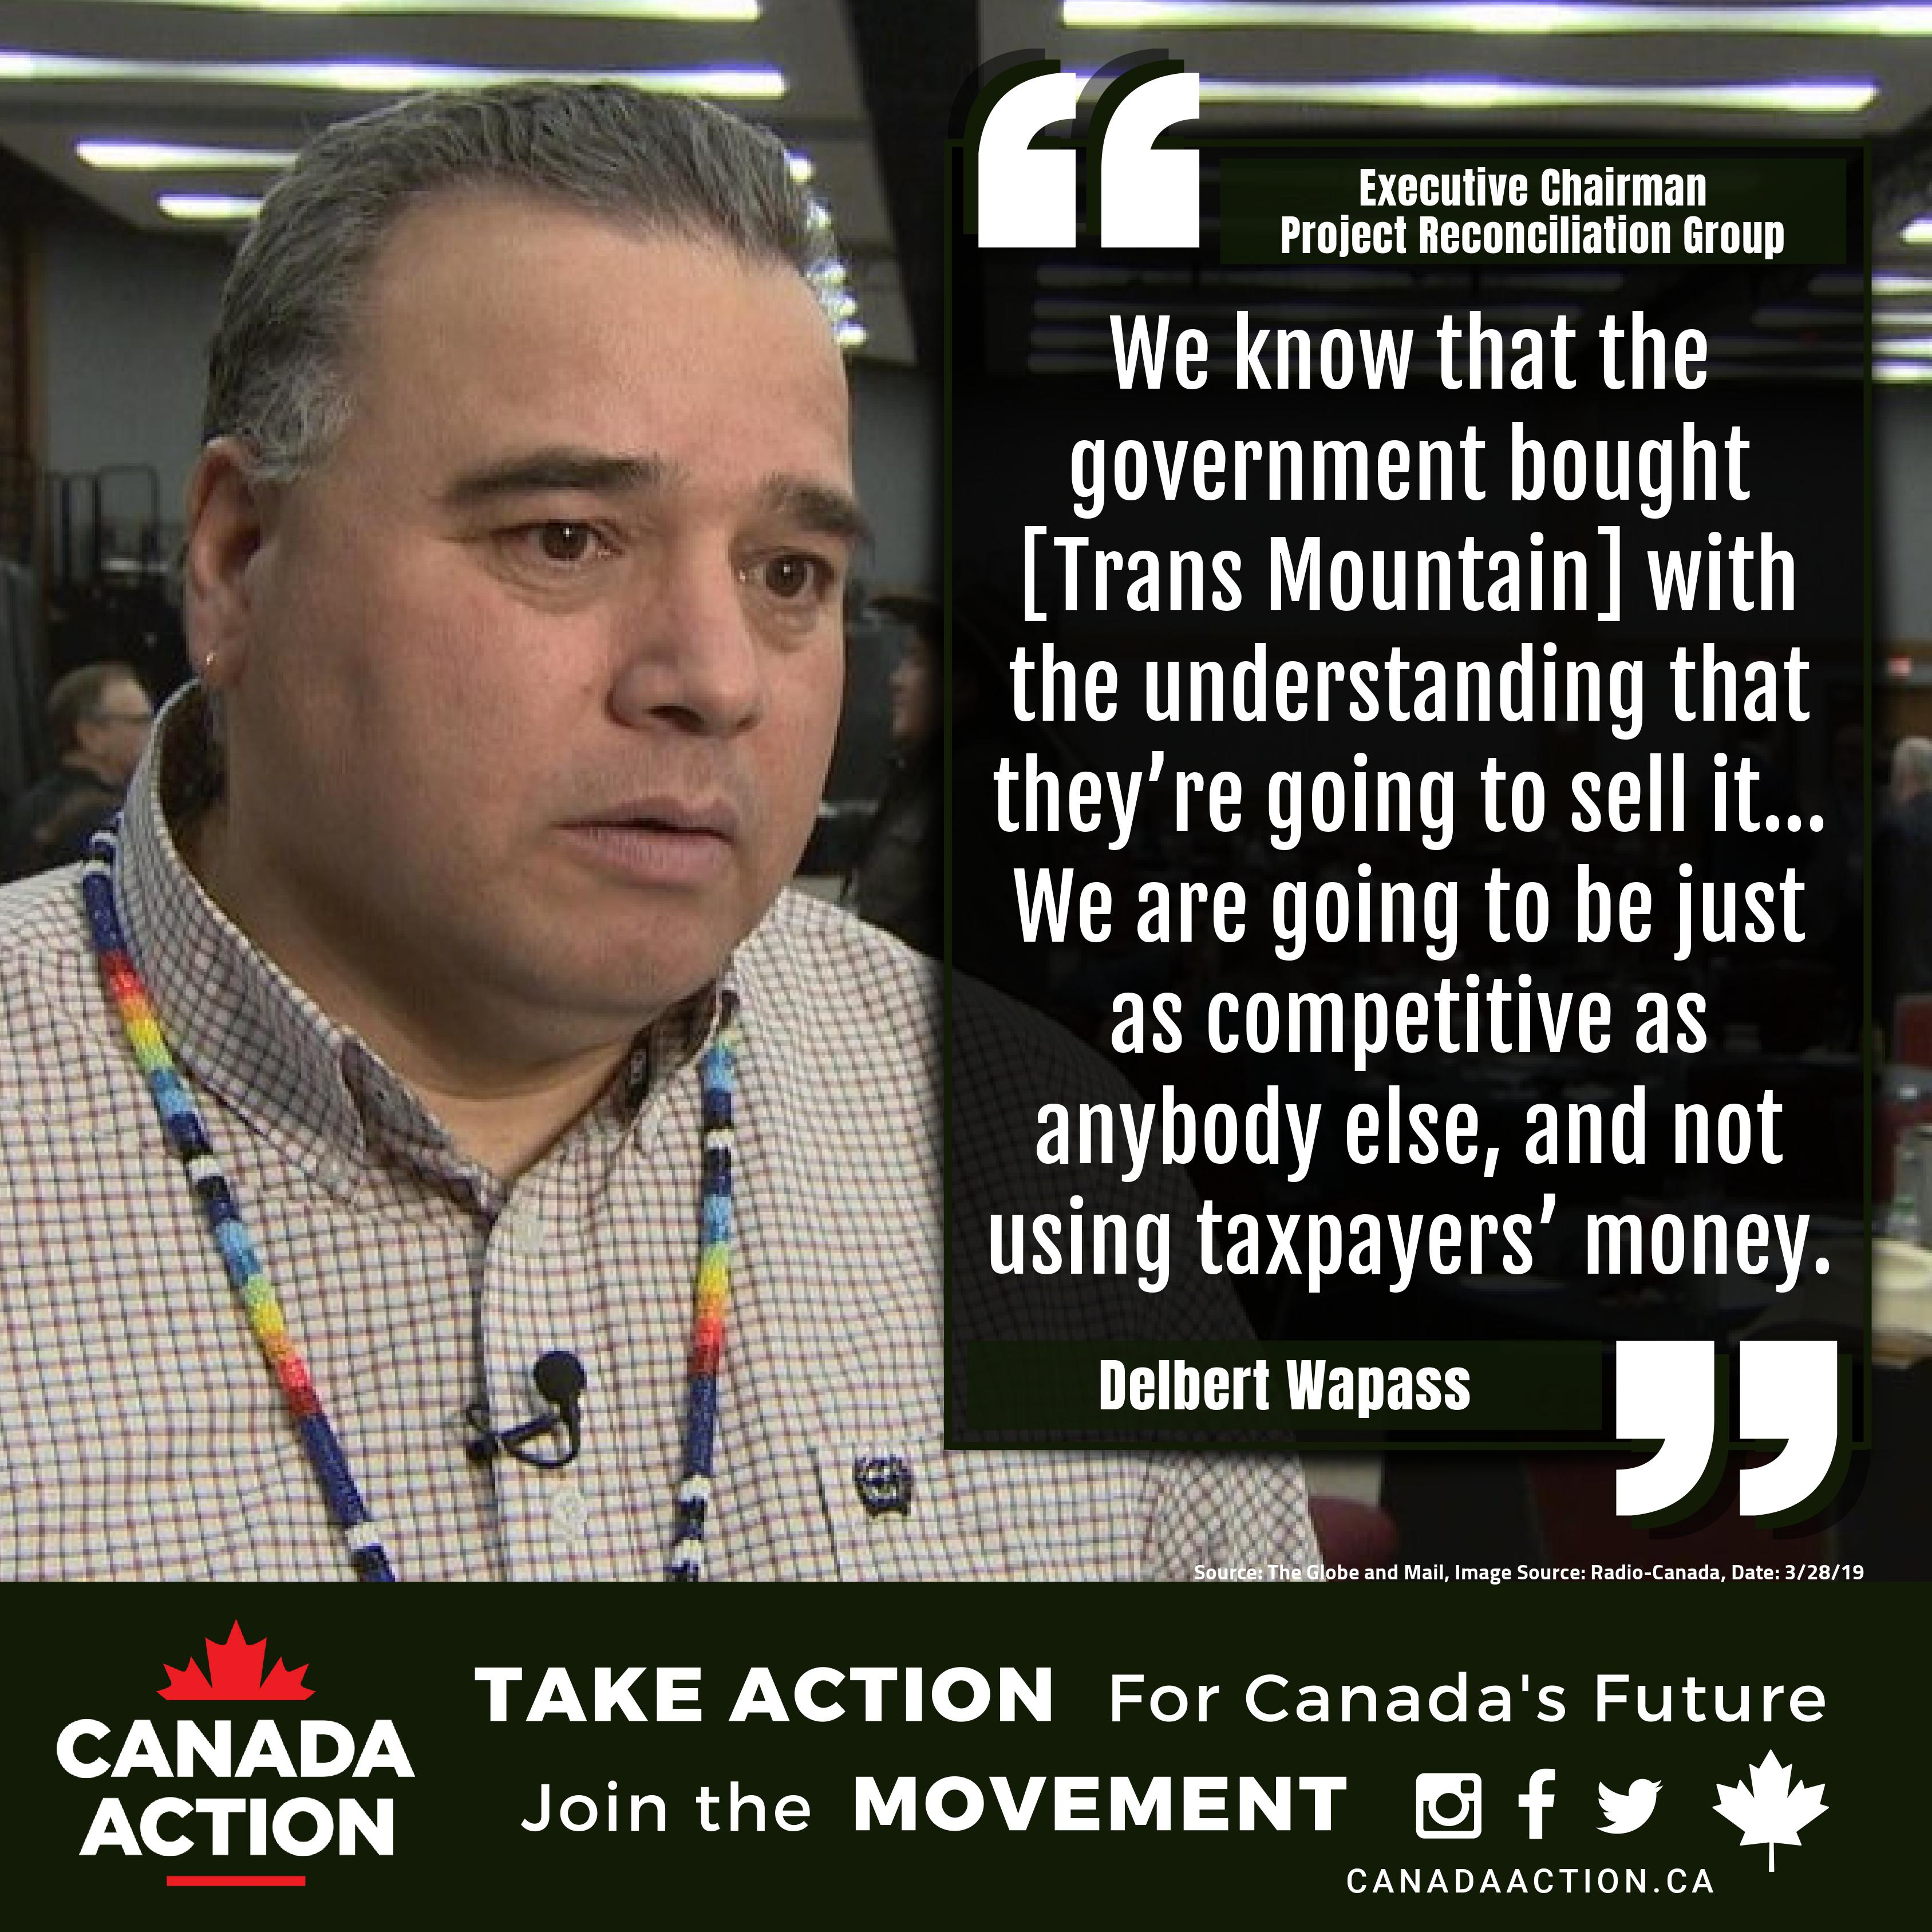 Delbert Wapass, Project Reconciliation, First Nations Group Wants to Buy Trans Mountain